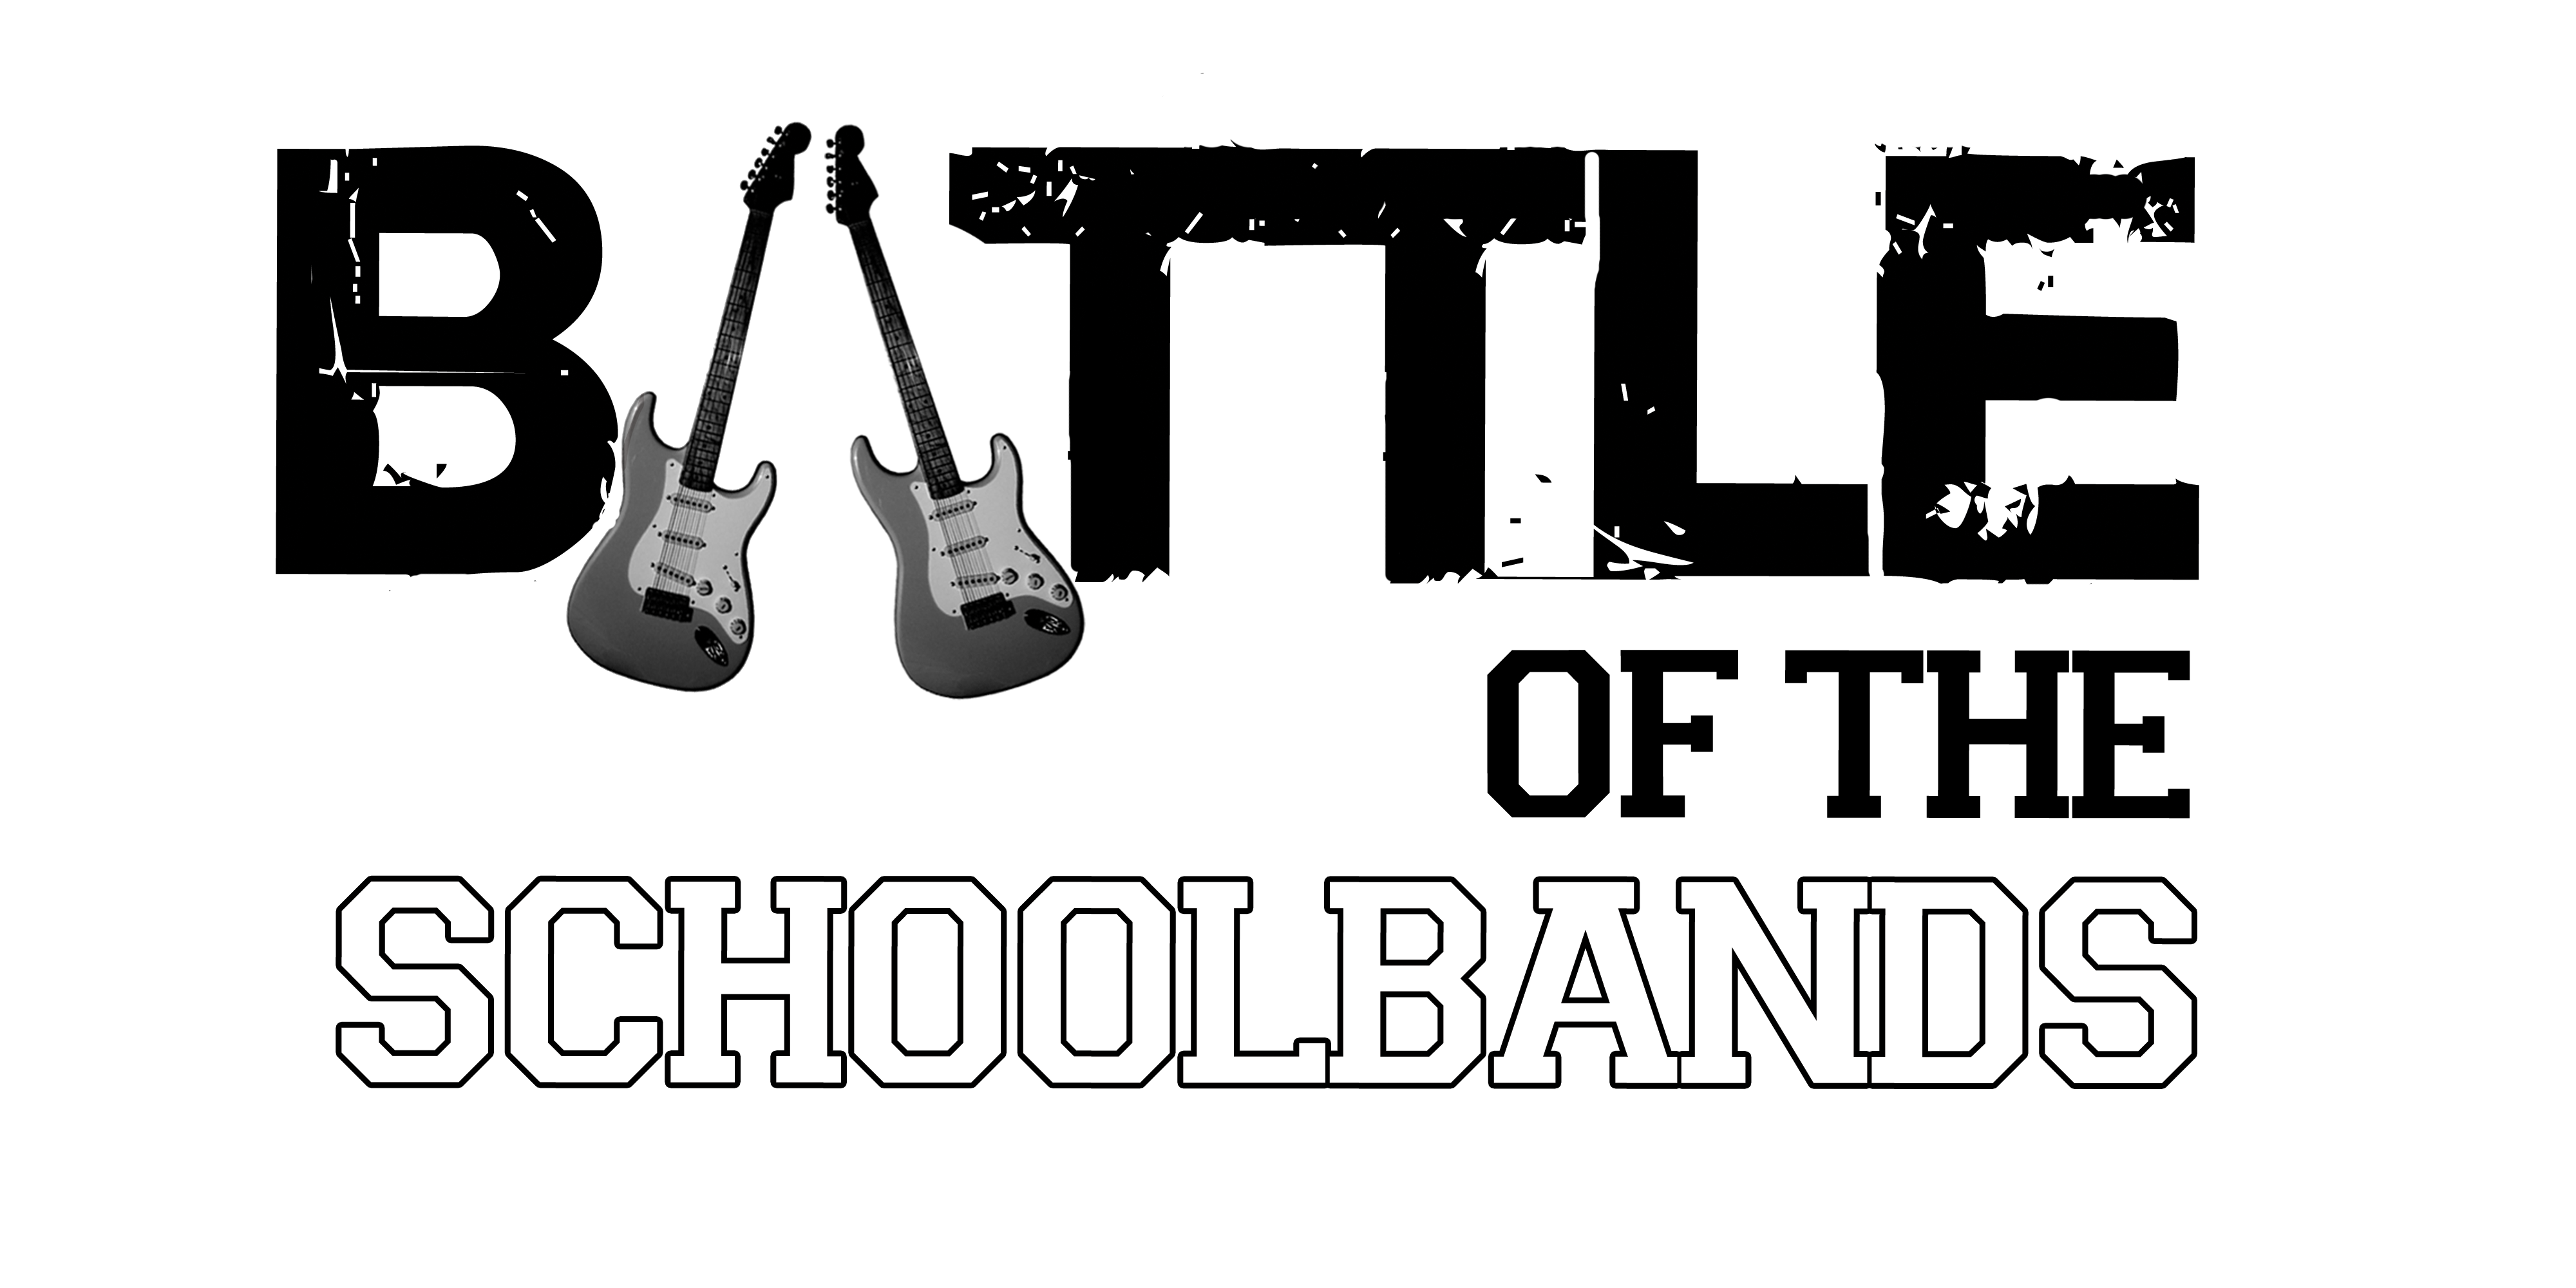 Battle of the Schoolbands